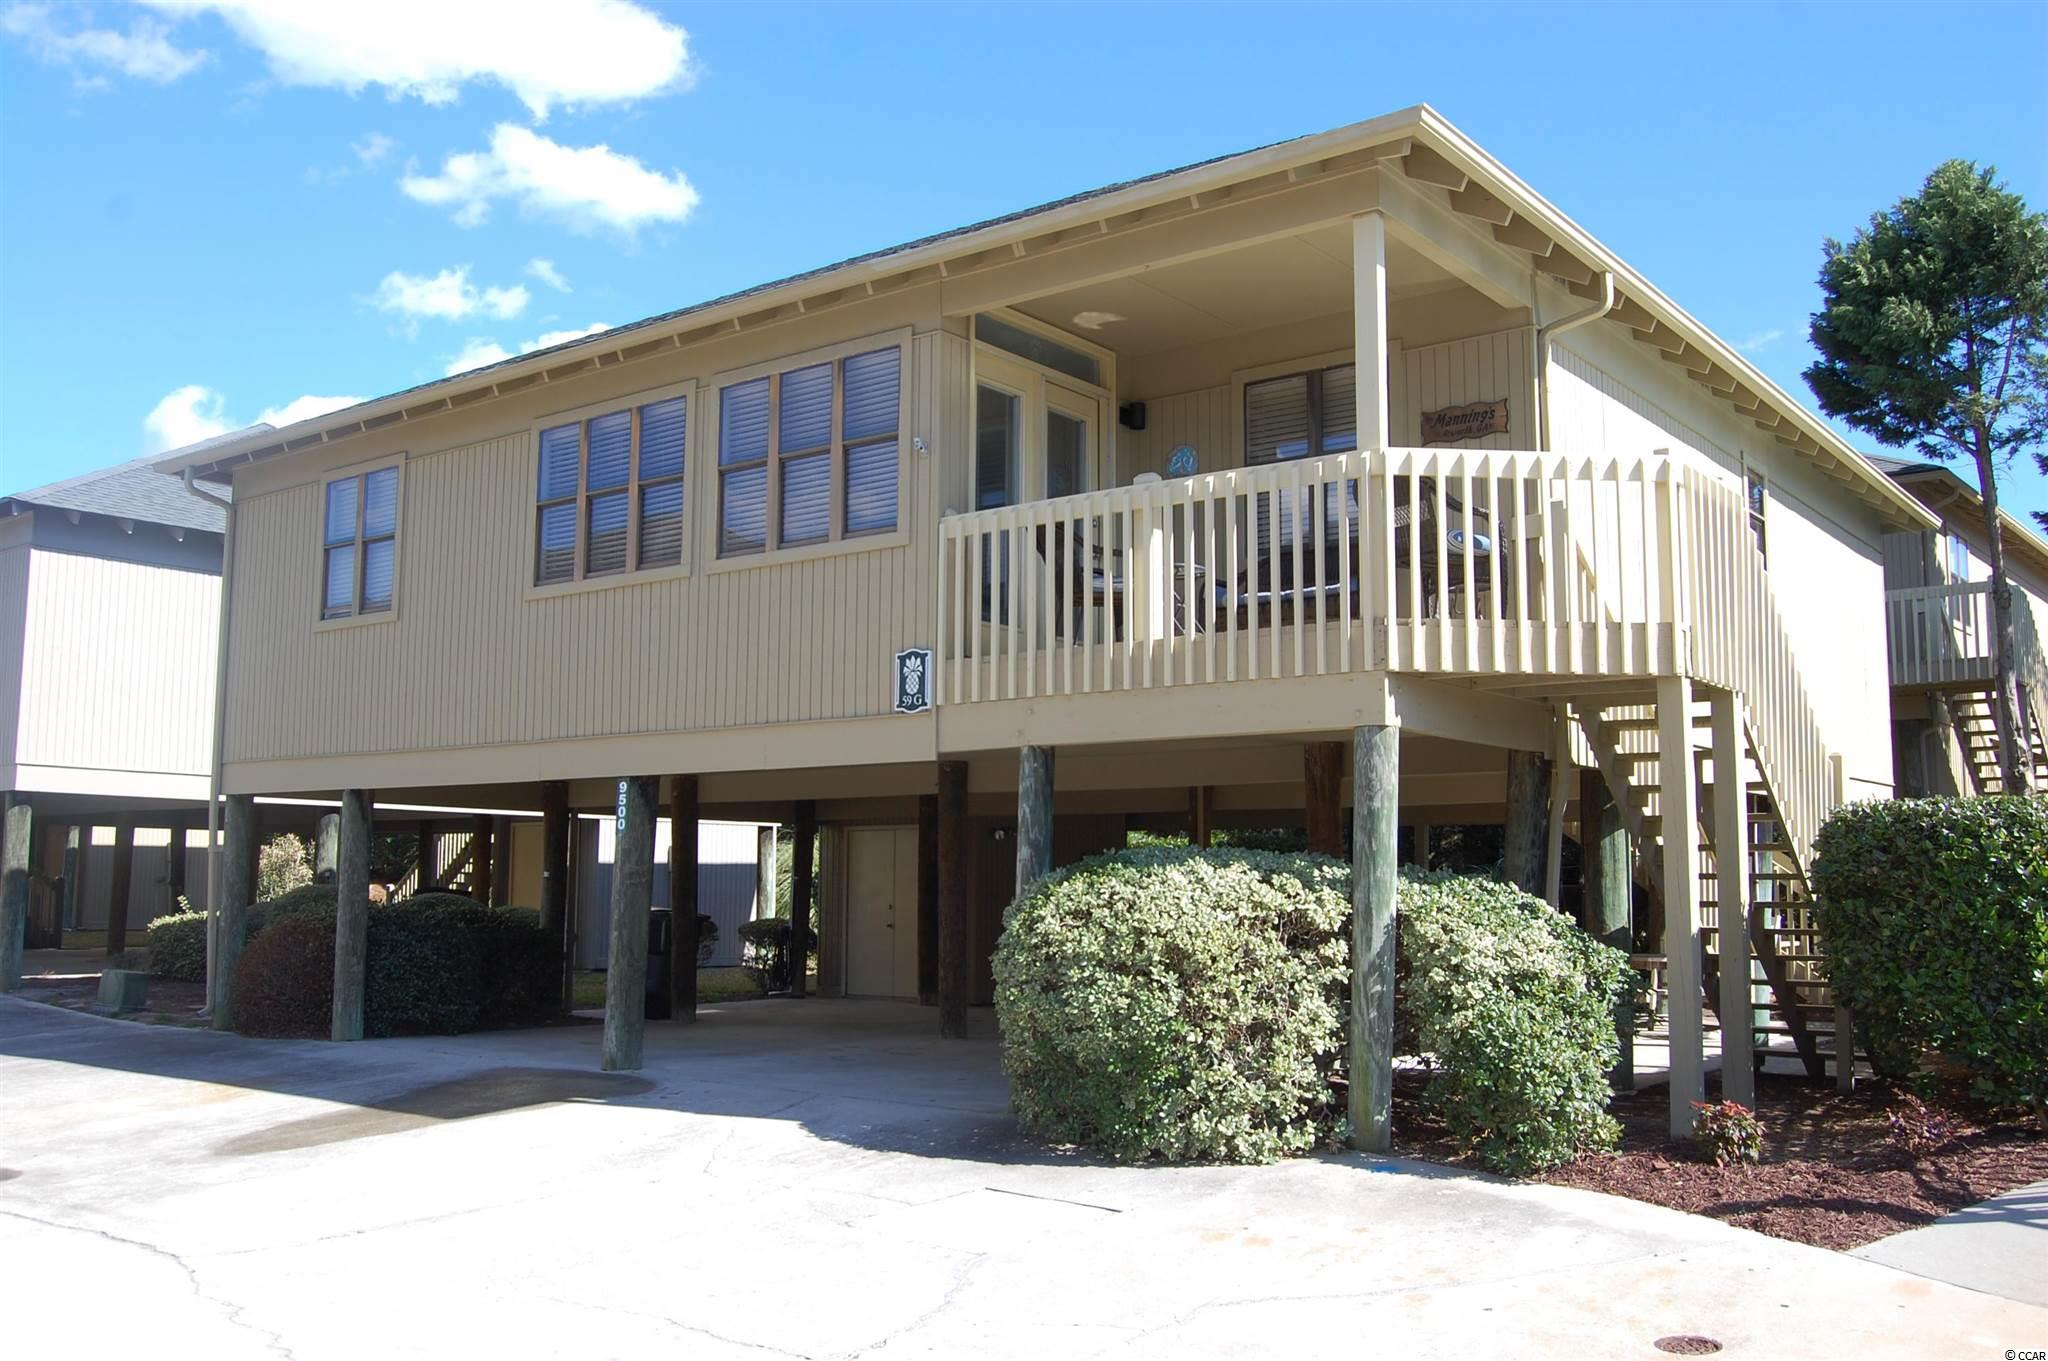 This is a rare opportunity to own a 4 bedroom / 3 bath,  well maintained,  Guest Cottage in the Shore Drive section of Myrtle Beach.  Only a short walk to the Ocean and a few steps to one of the exterior pools. Sold furnished including the linens so you only need to bring your toothbrush. To many updates to list but some are waterproof vinyl plank flooring in the living areas, thermo pane windows and updated bathrooms.  The HOA takes care of the cottage exterior, roof (#59 was replaced in 2008) and landscape.  This cottage is immaculate and spacious with all 4 bedrooms opening up to the large Living room.  A room off of the living room that can be used as a dining room  or Carolina room and opens to the front porch.  Wonderful outdoor living space under the cottage with 2 storage closets, one large enough to store your own golf cart.